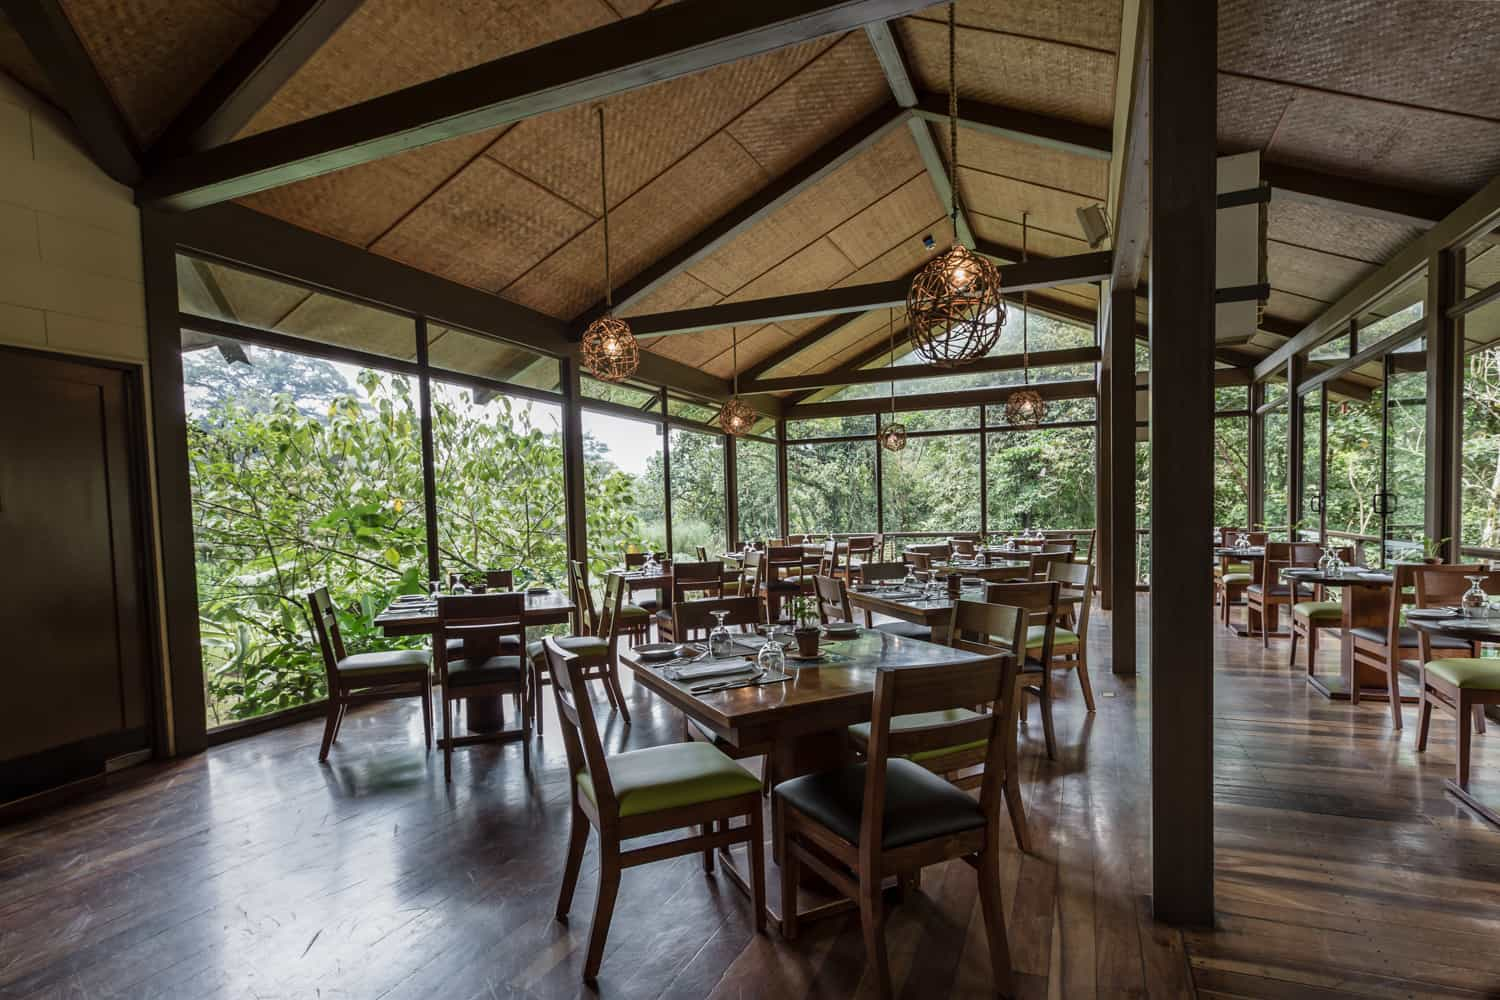 Reception area with wood floors and views of cloud forest.